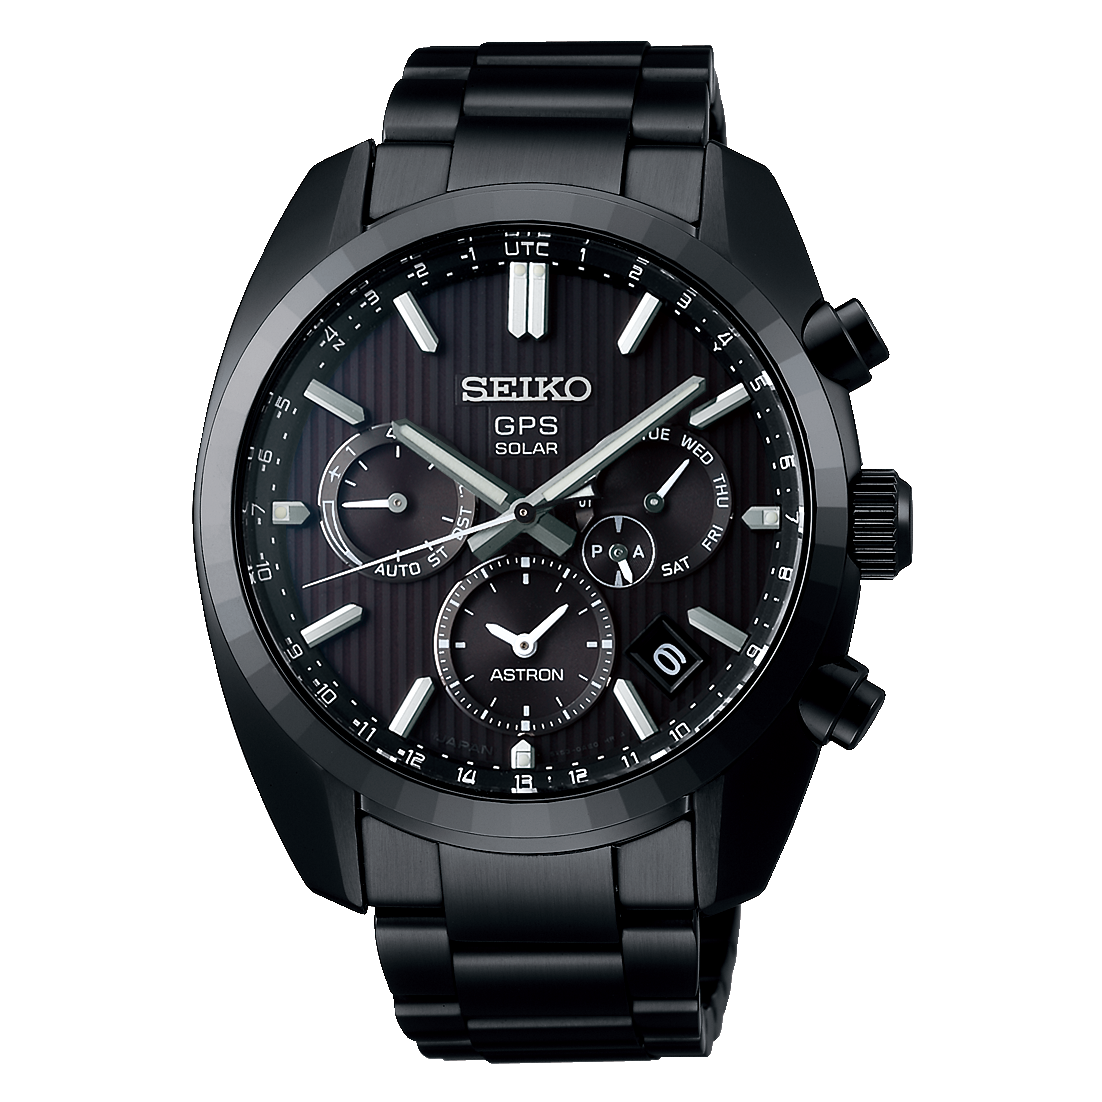 Seiko Astron GPS Solar The 1969 Quartz Astron 50th Anniversary Limited Edition SSH023J1